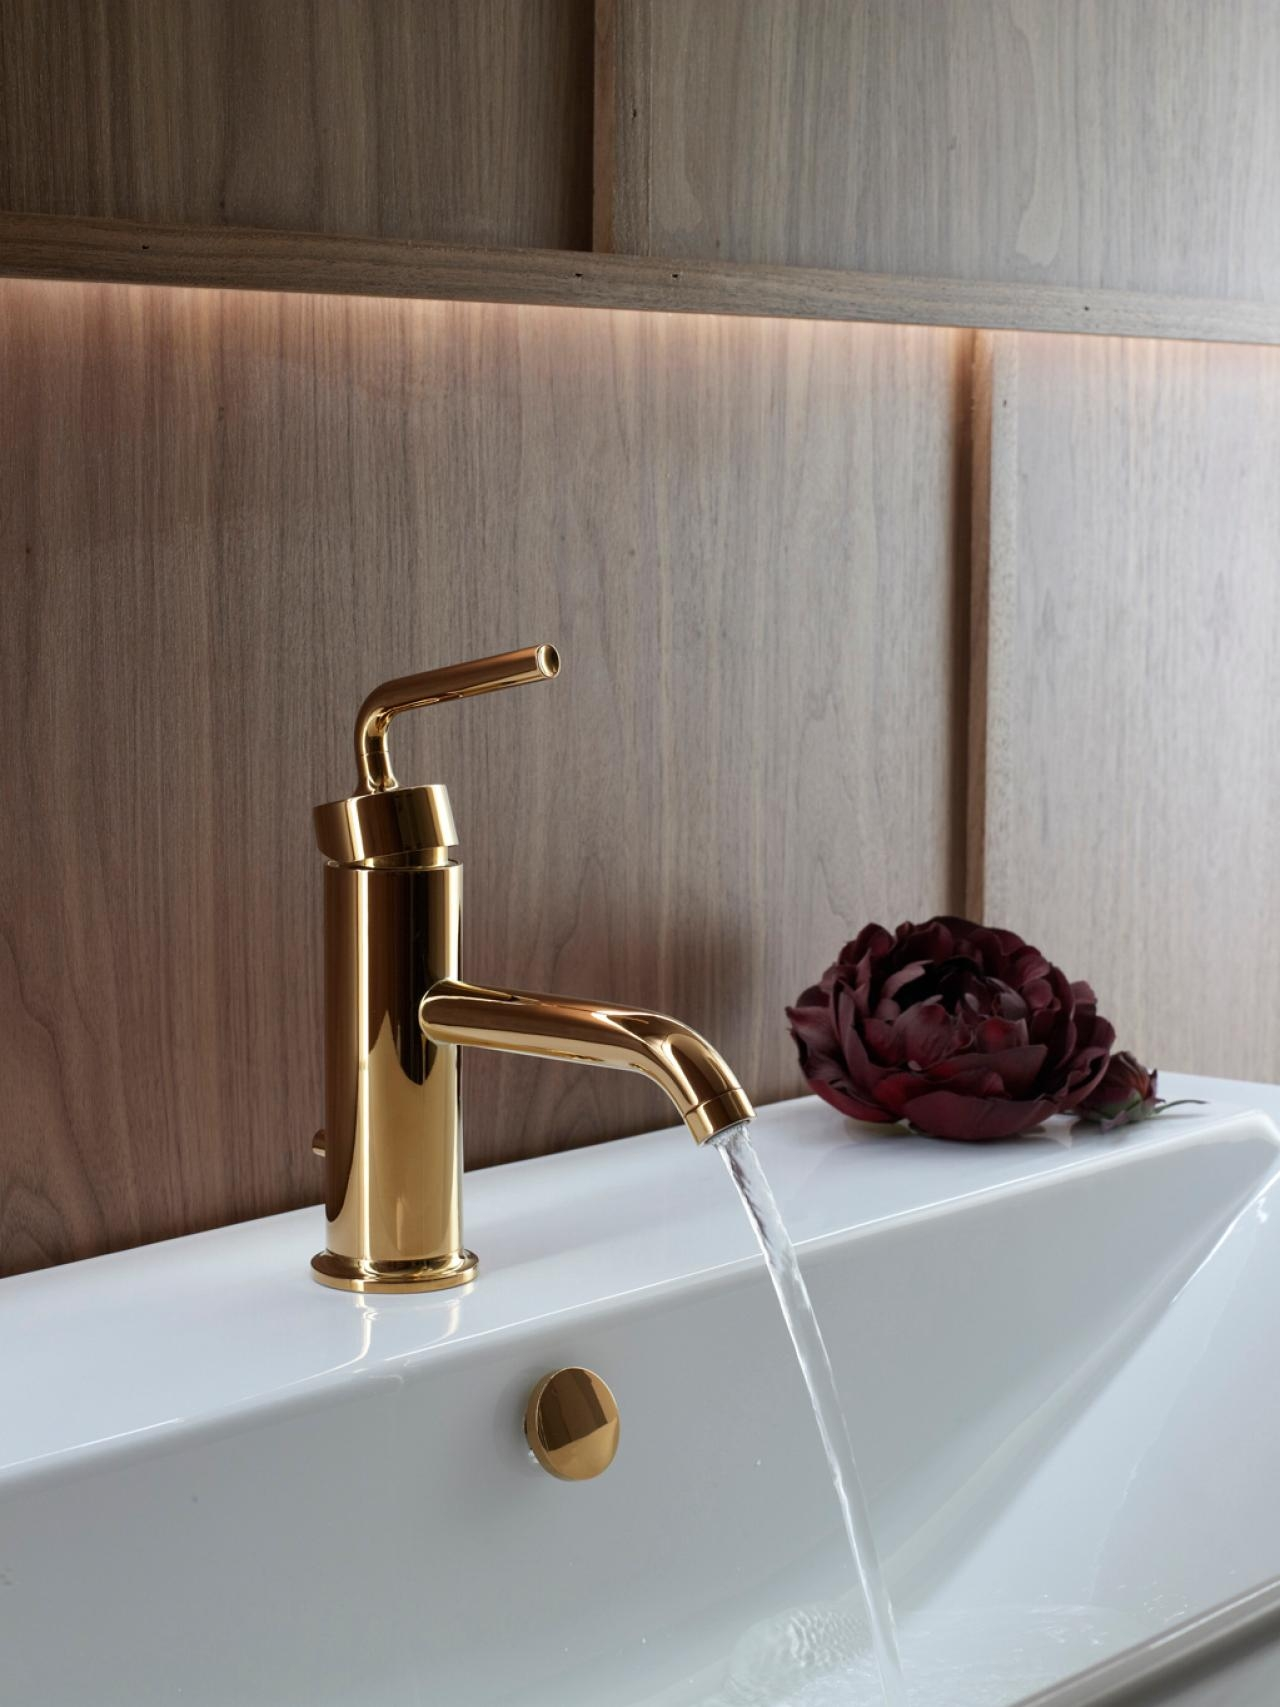 bathroom best faucets 2012 reviews 2013 2015 2014 navpa2016 for measurements 1280 x 1707